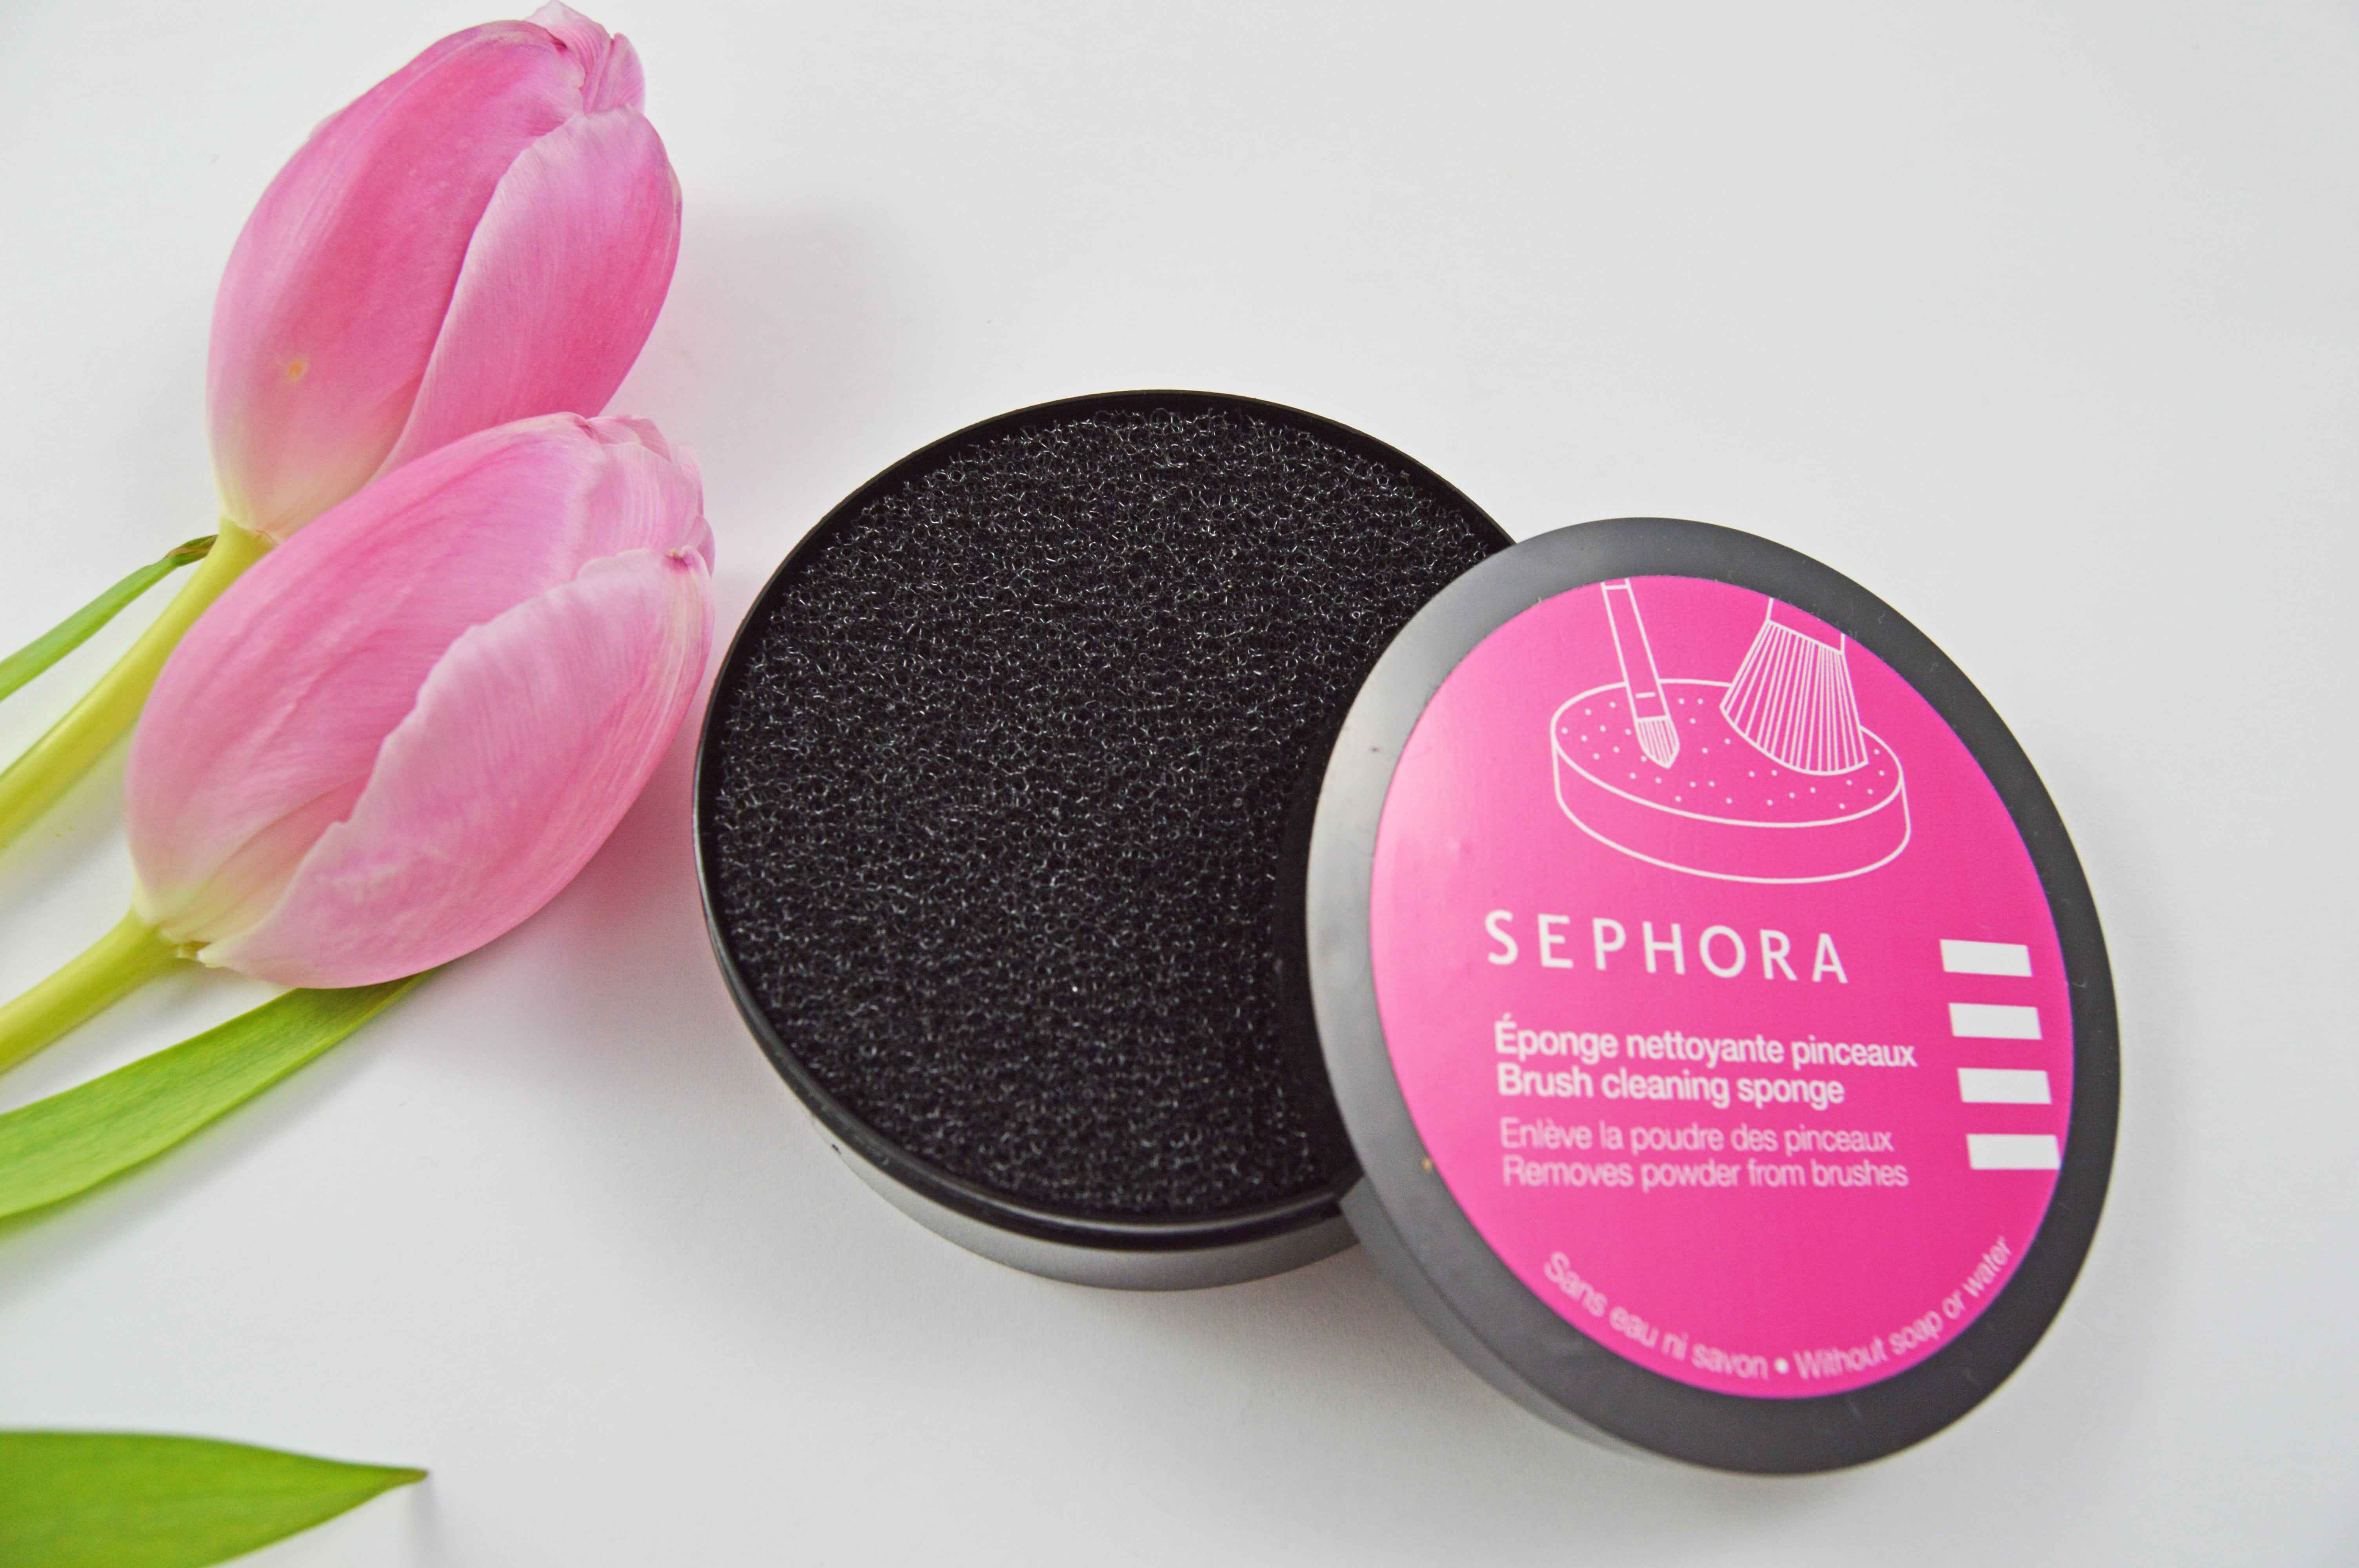 Made in Sephora - Brush cleaning sponge